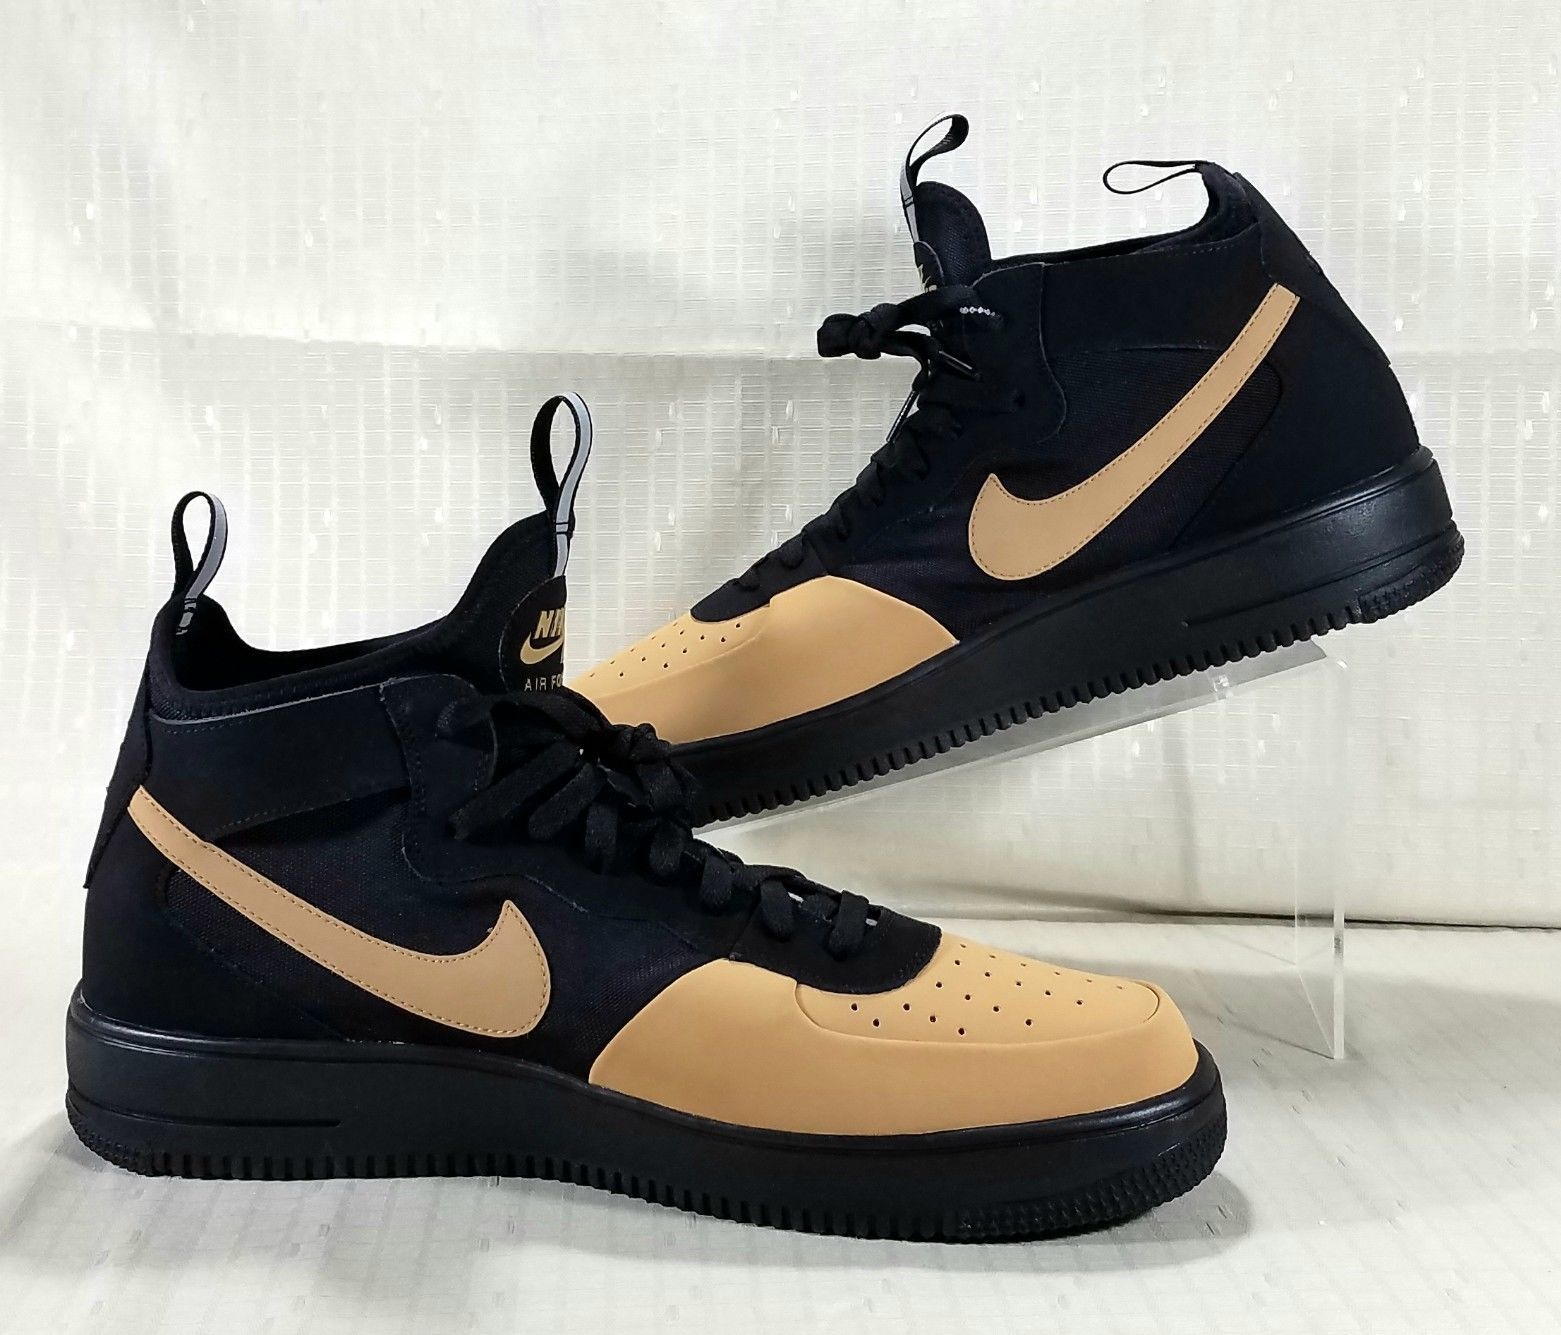 half off 5a541 71165 Nike Air Force 1 Ultraforce Mid Tech Shoes Mens Size 14 Black   Gold AH6746-